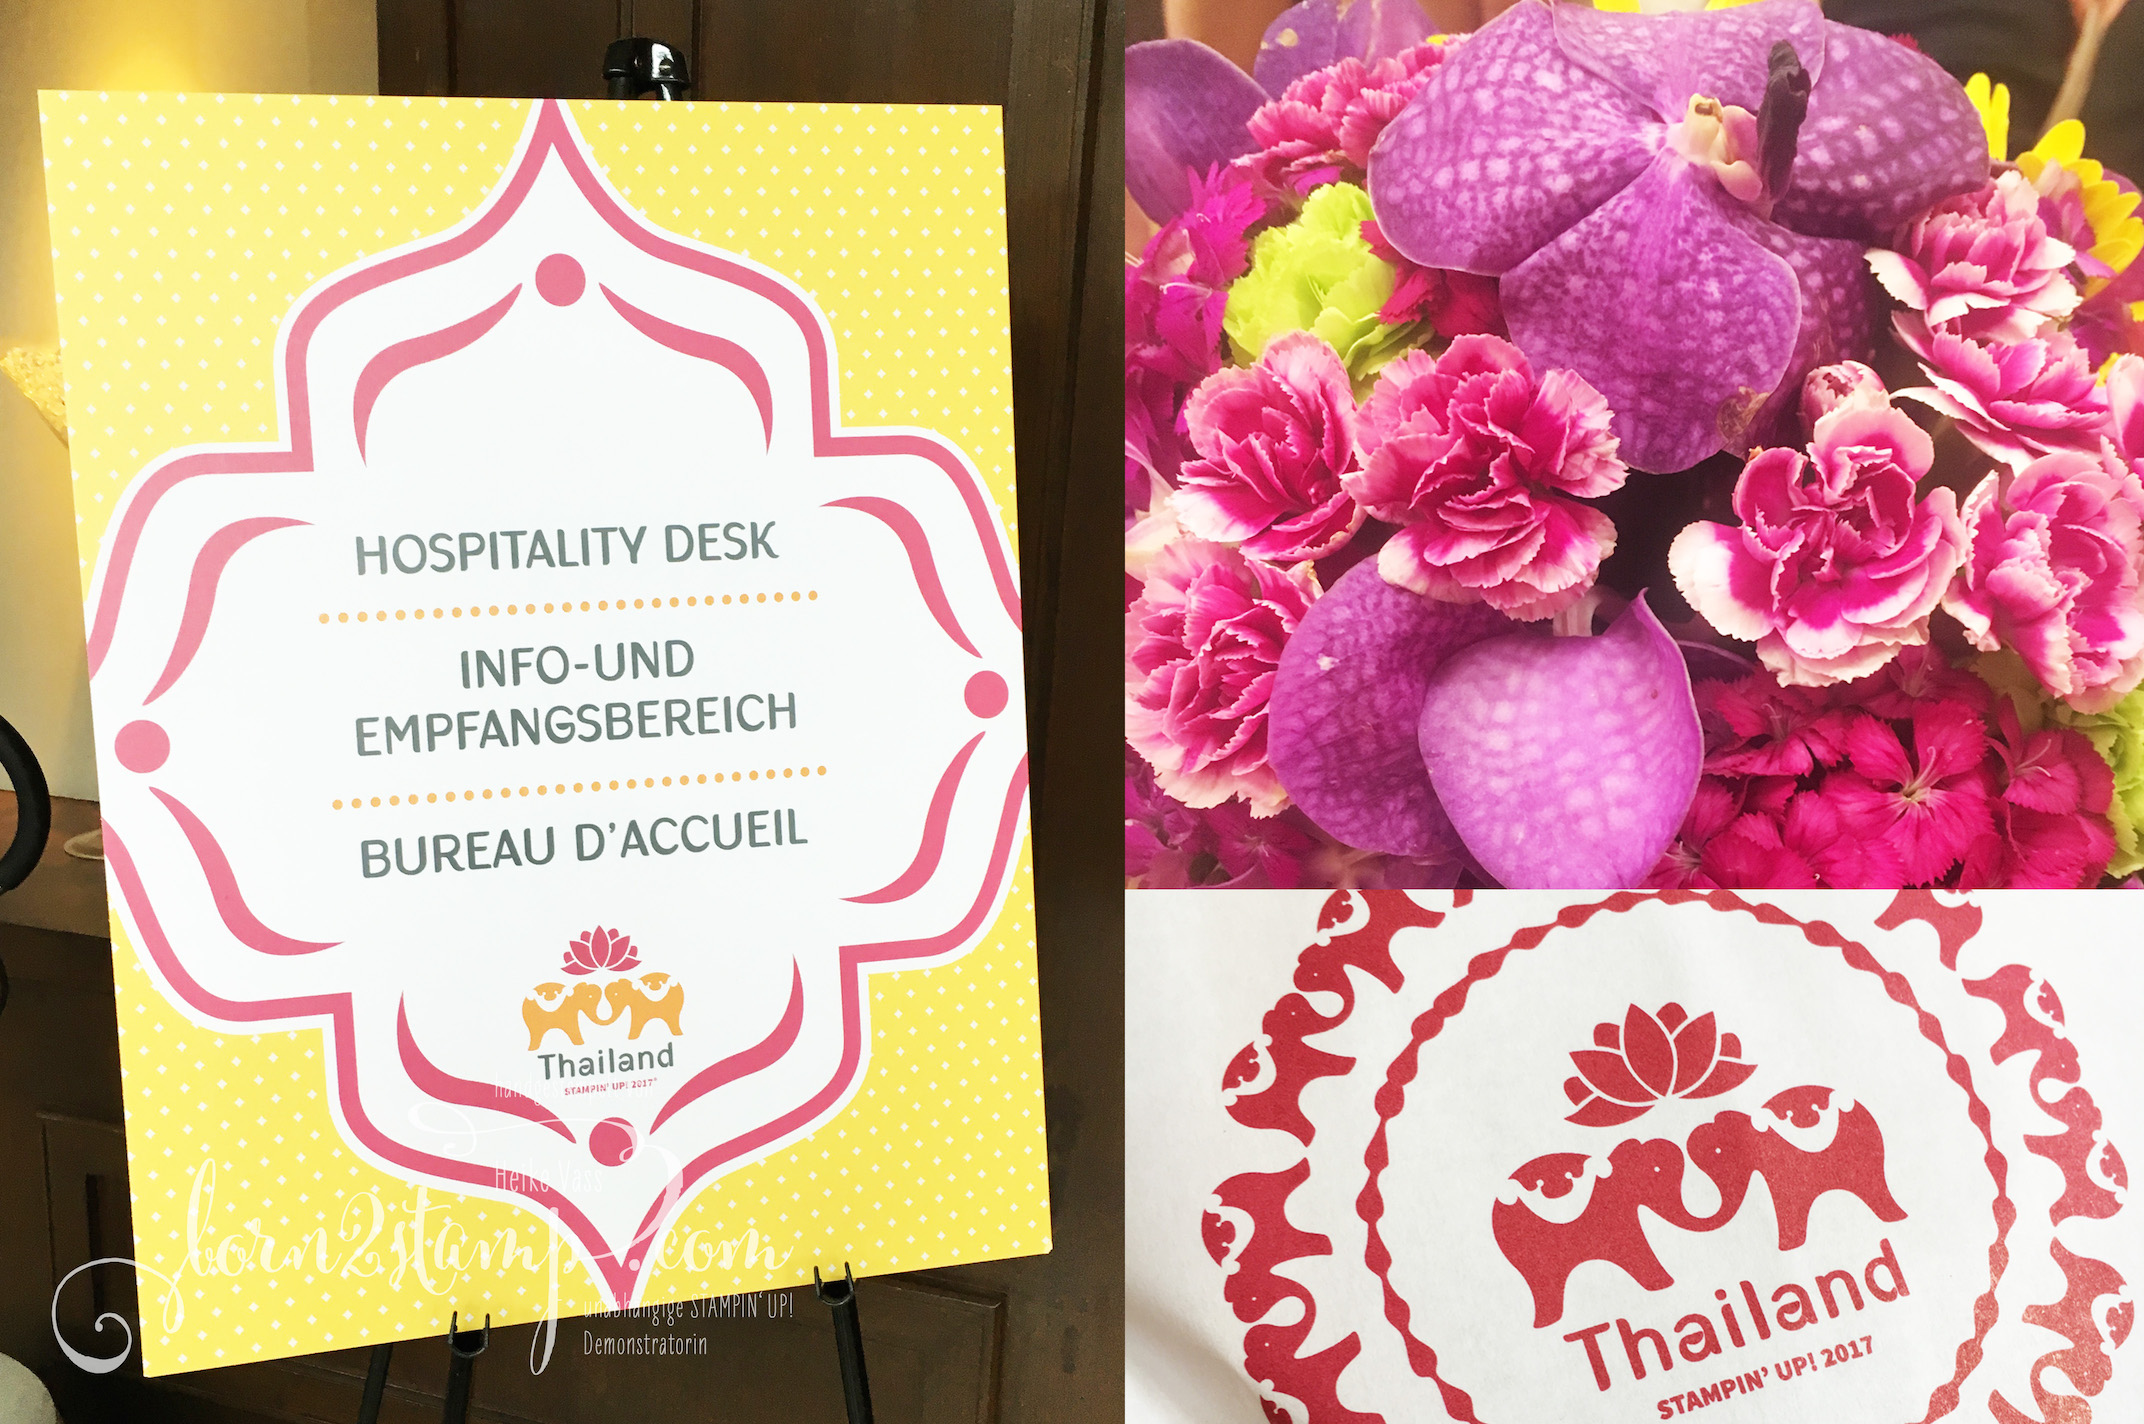 STAMPIN' UP! born2stamp Prämienreise Thailand – Hospitality Room